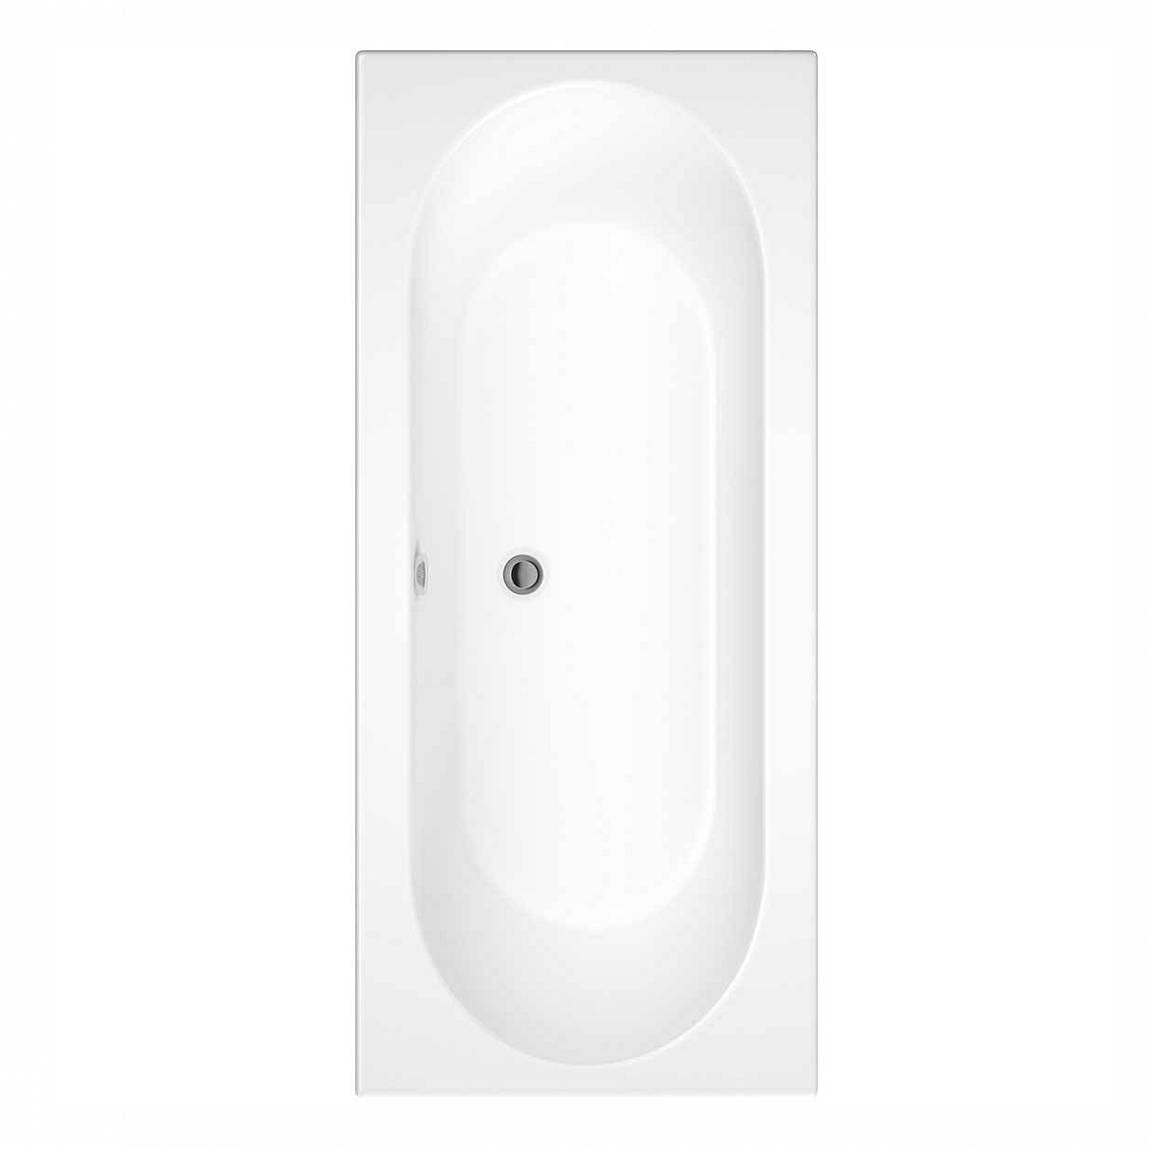 Orchard round edge double ended bath offer pack